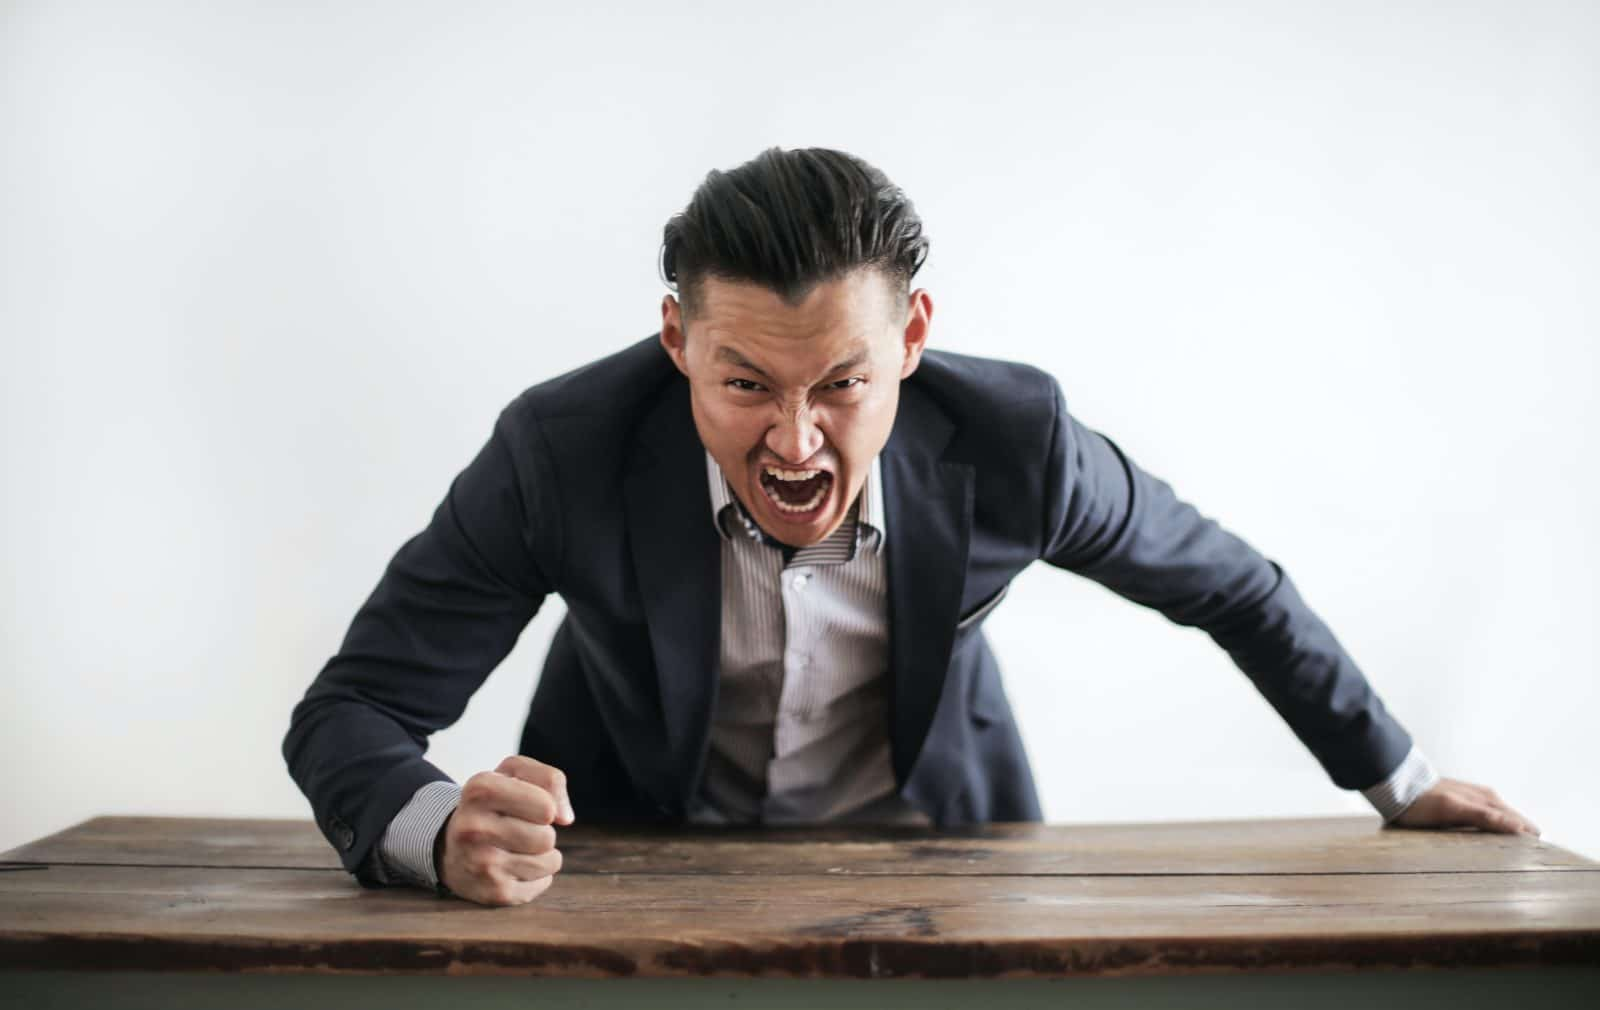 Dealing with Bullying at work